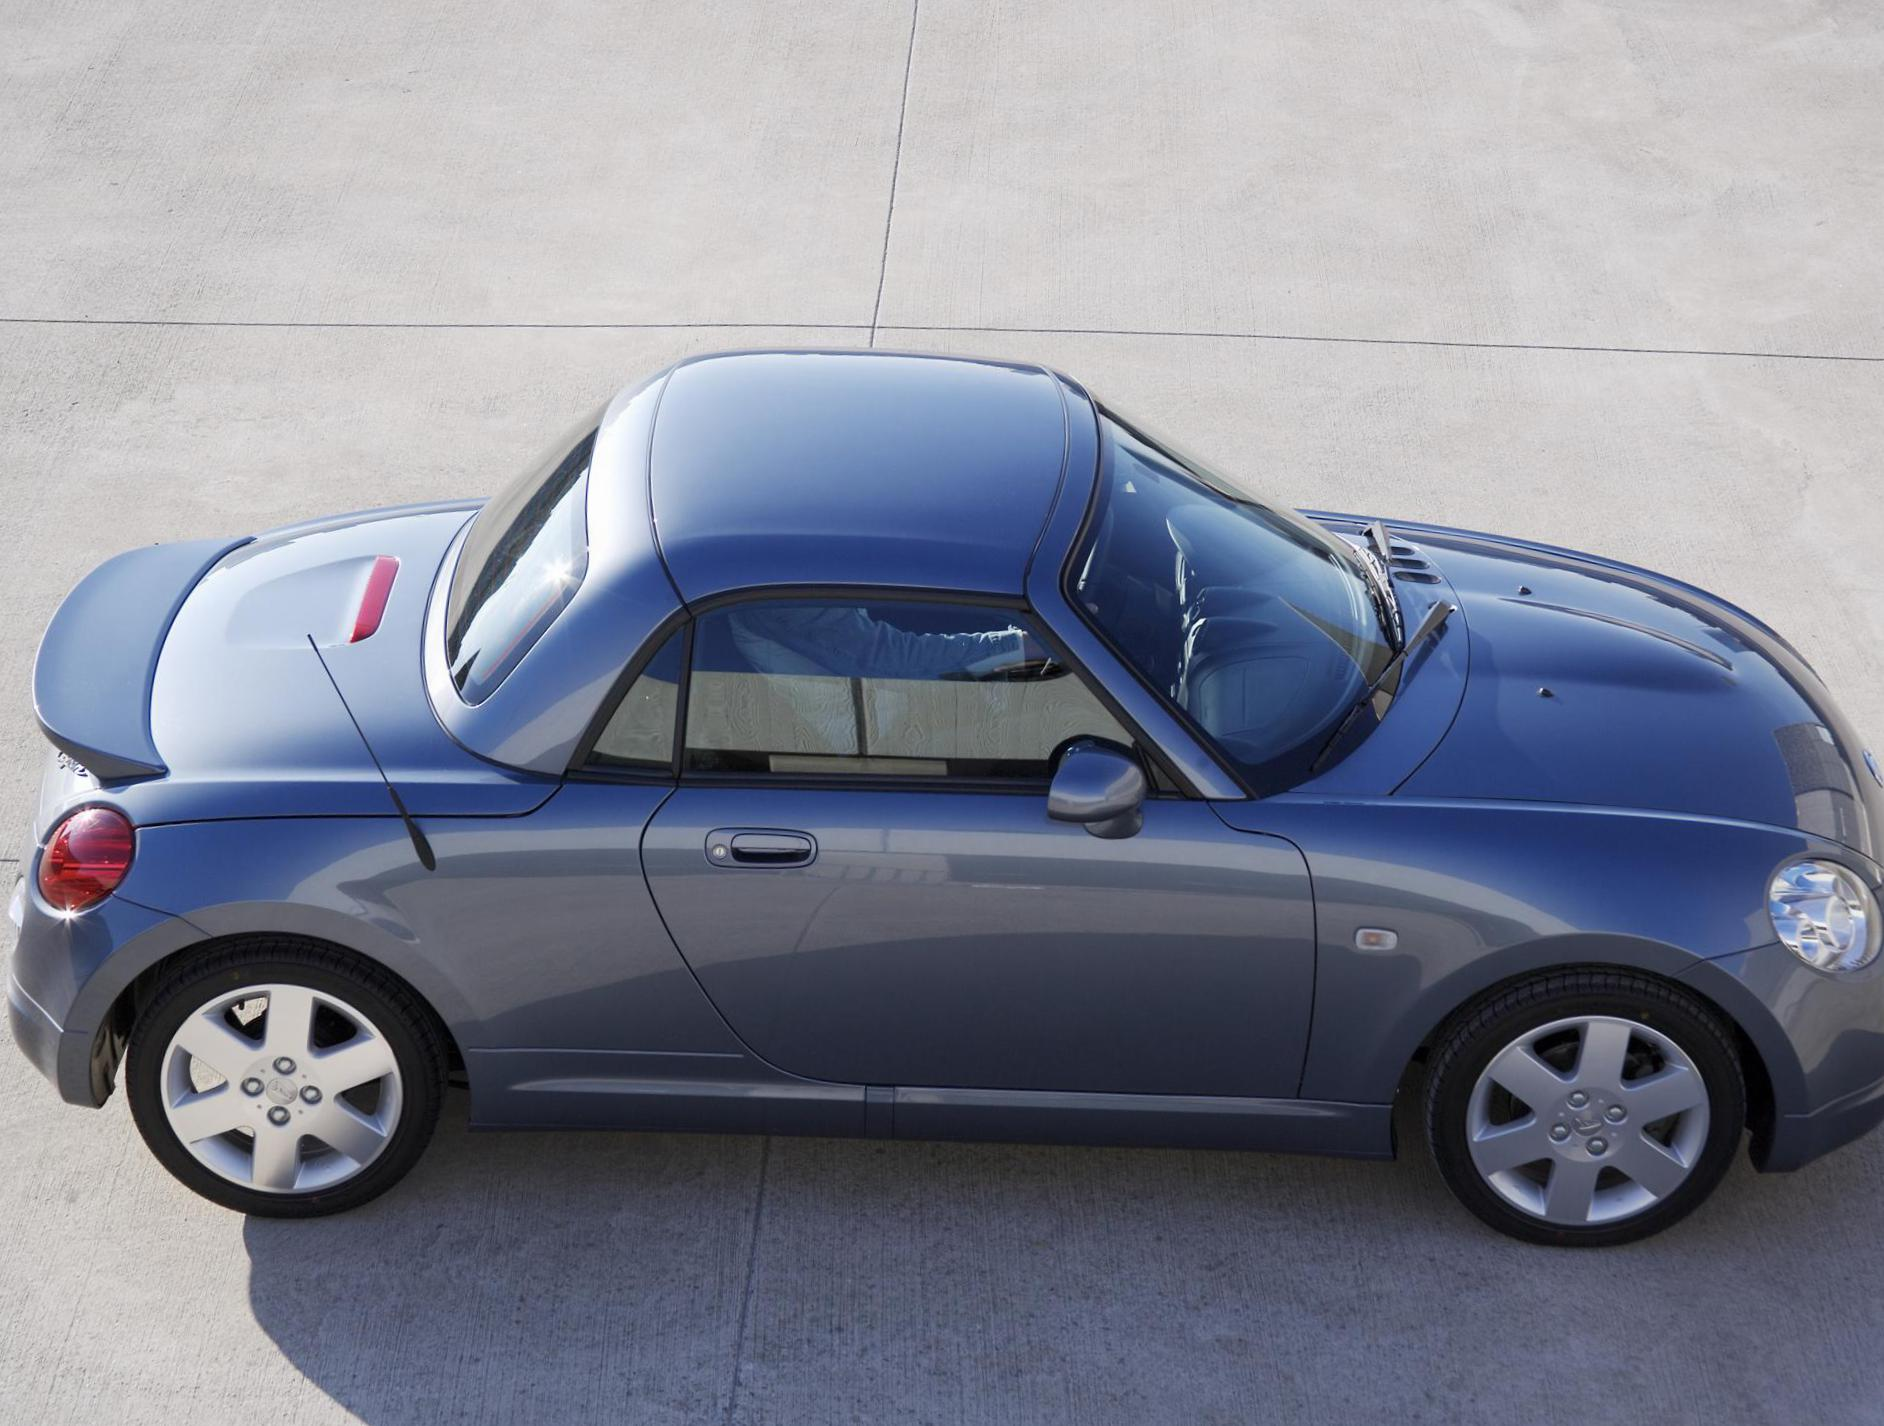 daihatsu copen photos and specs photo daihatsu copen parts and 24 perfect photos of daihatsu copen. Black Bedroom Furniture Sets. Home Design Ideas